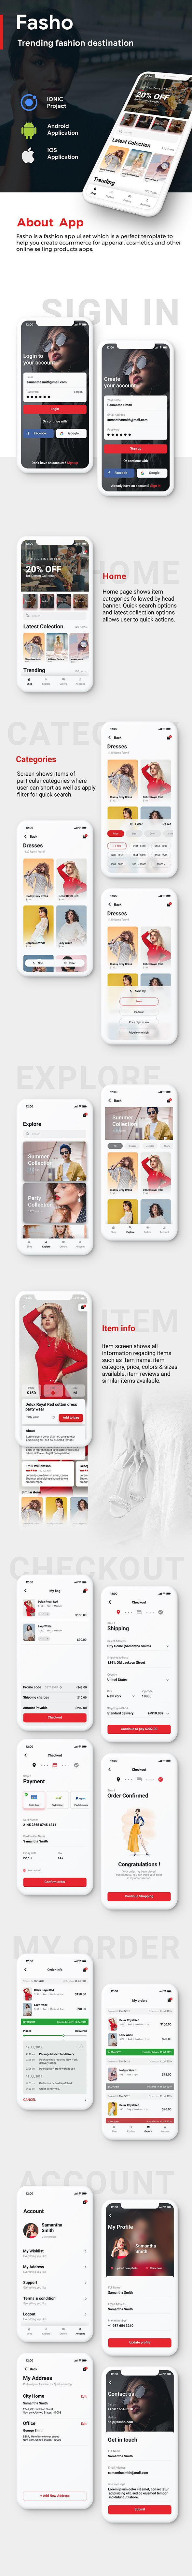 Fashion Ecommerce Android App + iOS App Template | Fasho (HTML+CSS files IONIC 3) - 2